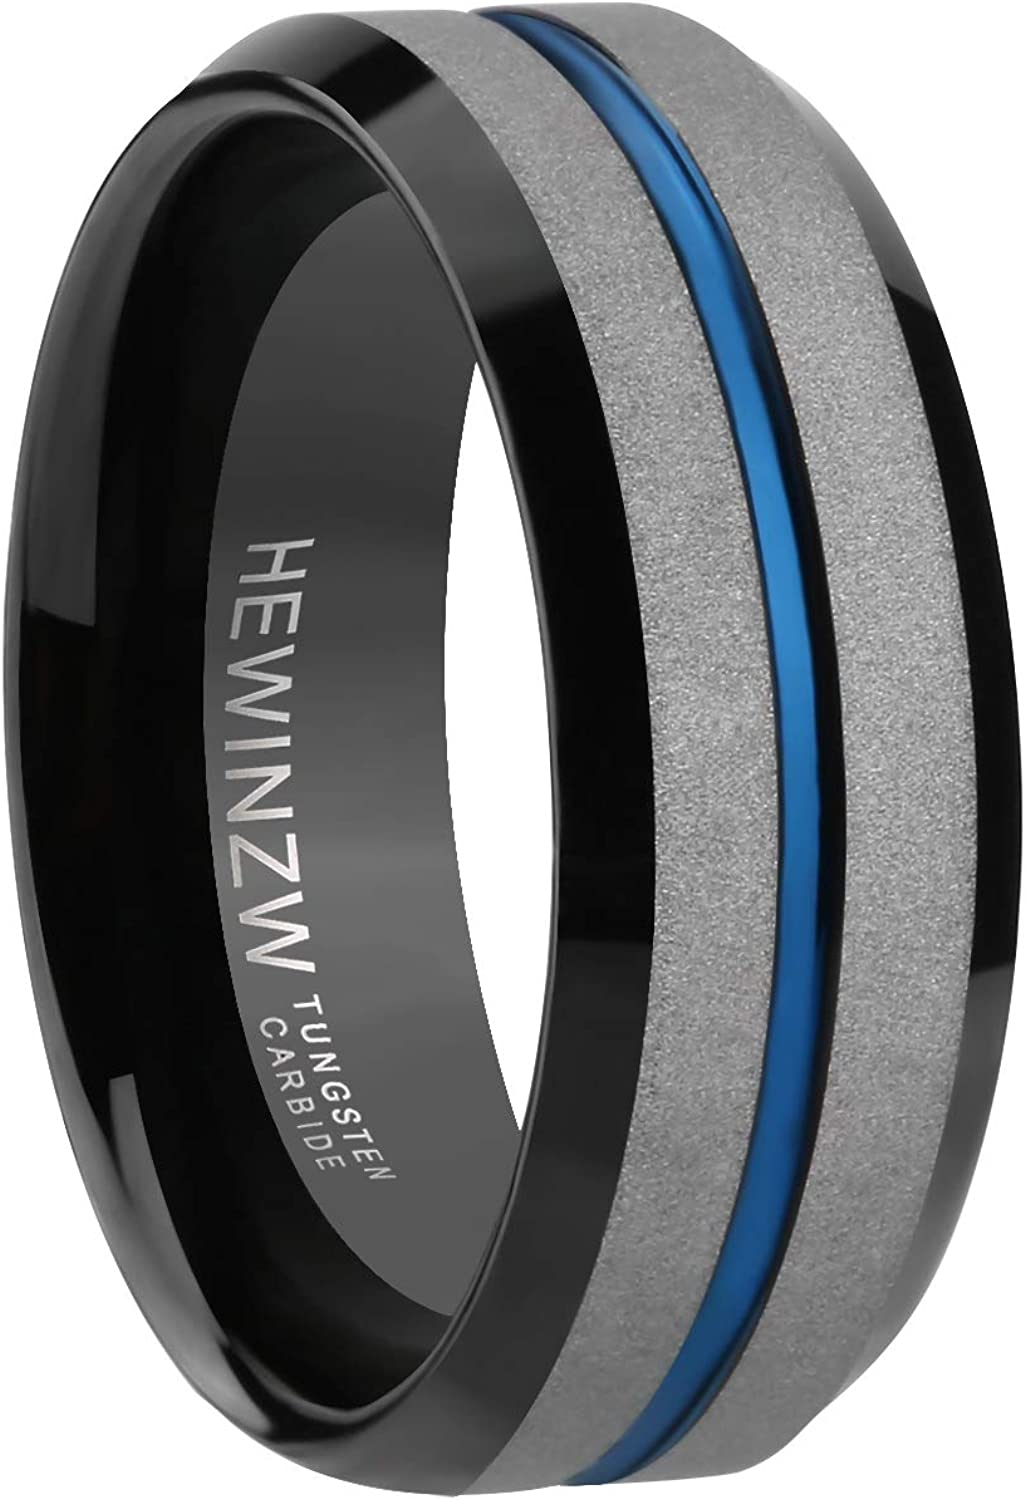 HEWINZW Tungsten Ring Men 7mm Blue Grooved Design Beveled Edge Engagement Wedding Band Comfort Fit Size 7-13